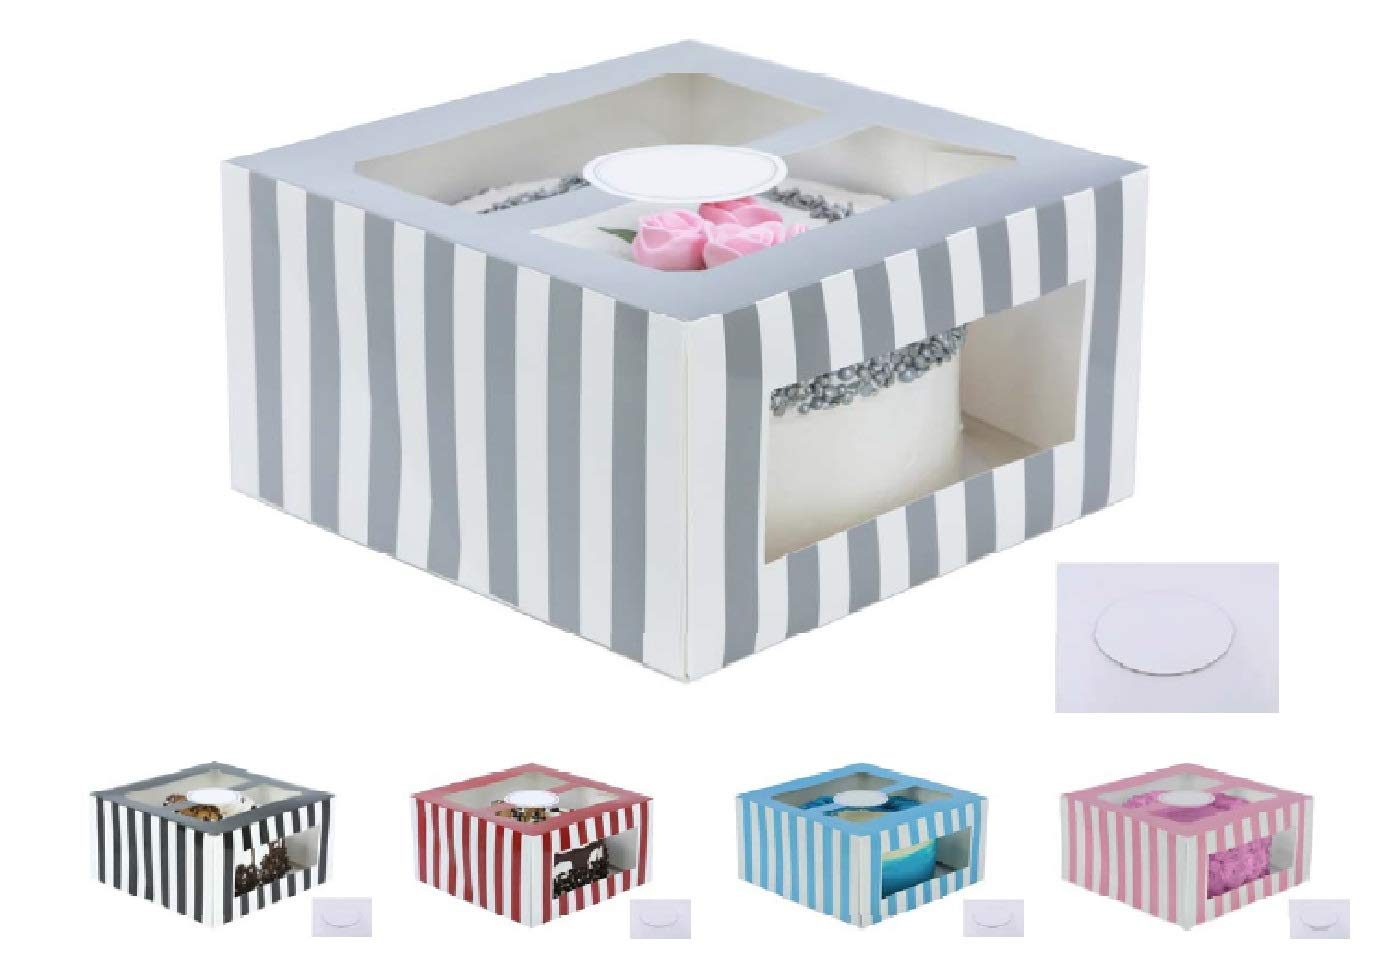 Confection Protection Cardboard Cake Boxes: 10 x 10 x 6 Inch Tall Cake Box Set with Cake Boards - Bakery Carrier Container with Window Panels for Wedding, Bake Sales - 10 Pack, Glossy Silver Stripes